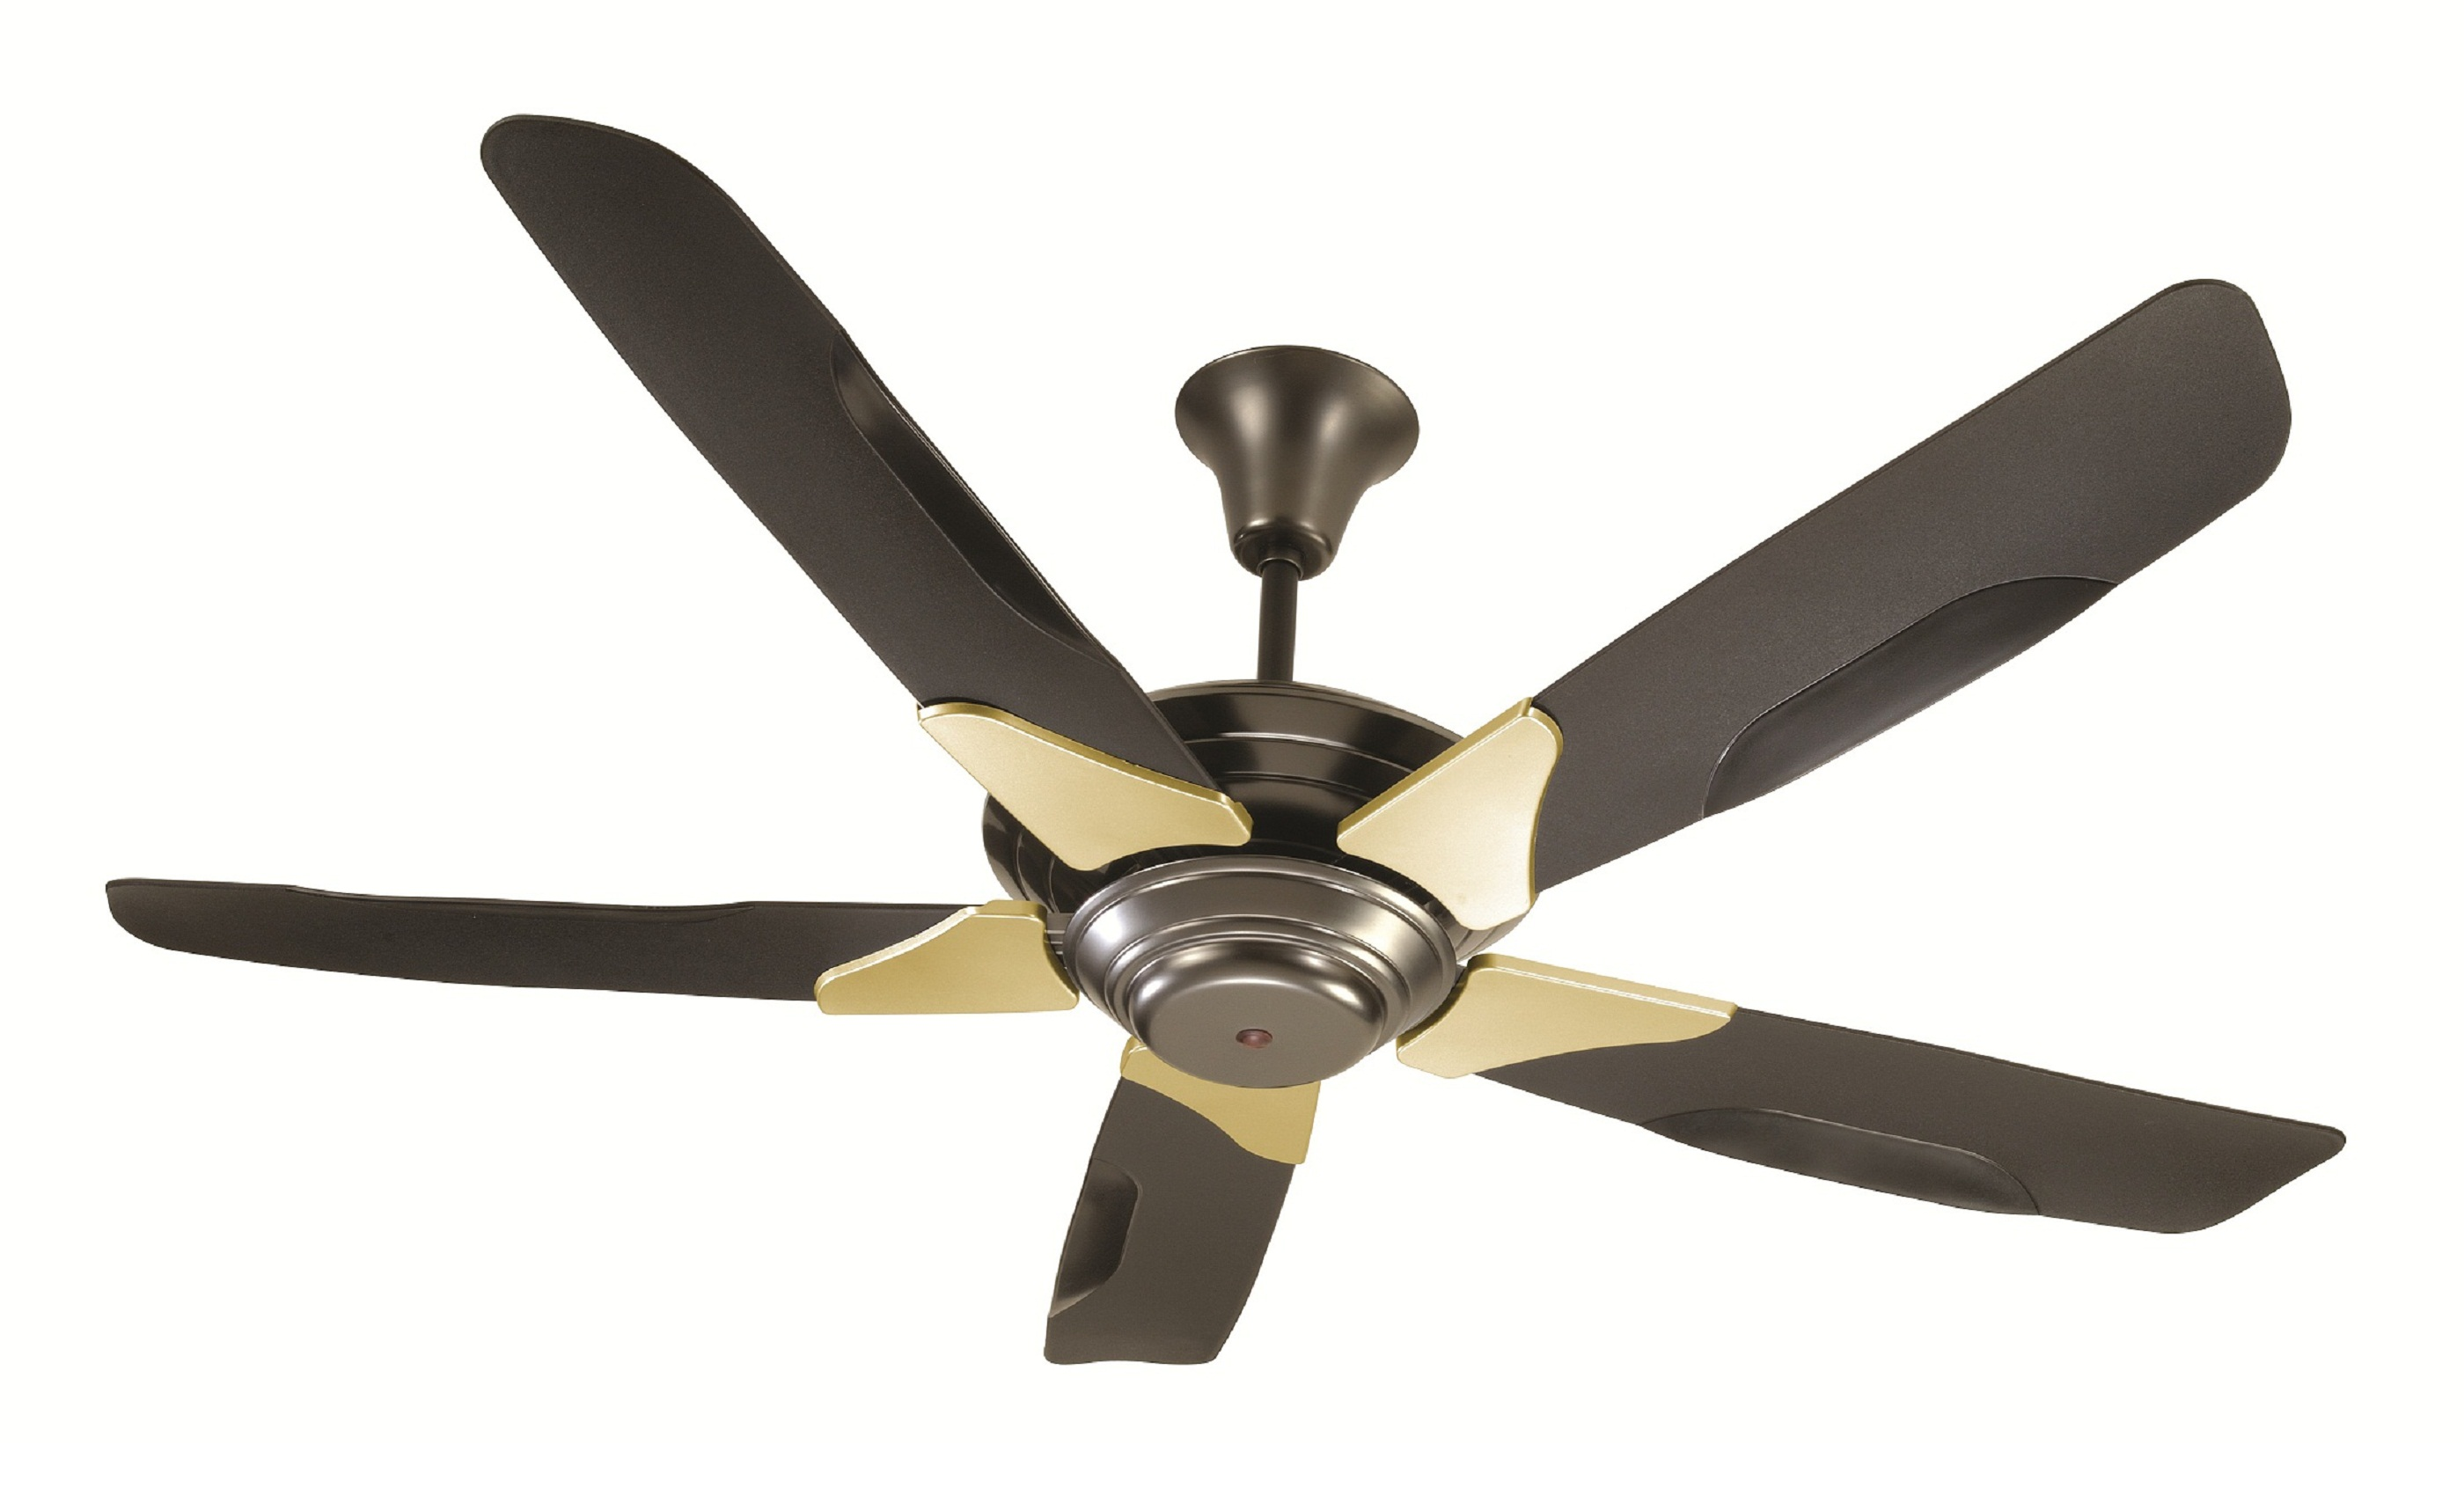 Ceiling fan wikiwand - Pictures of ceiling fans ...